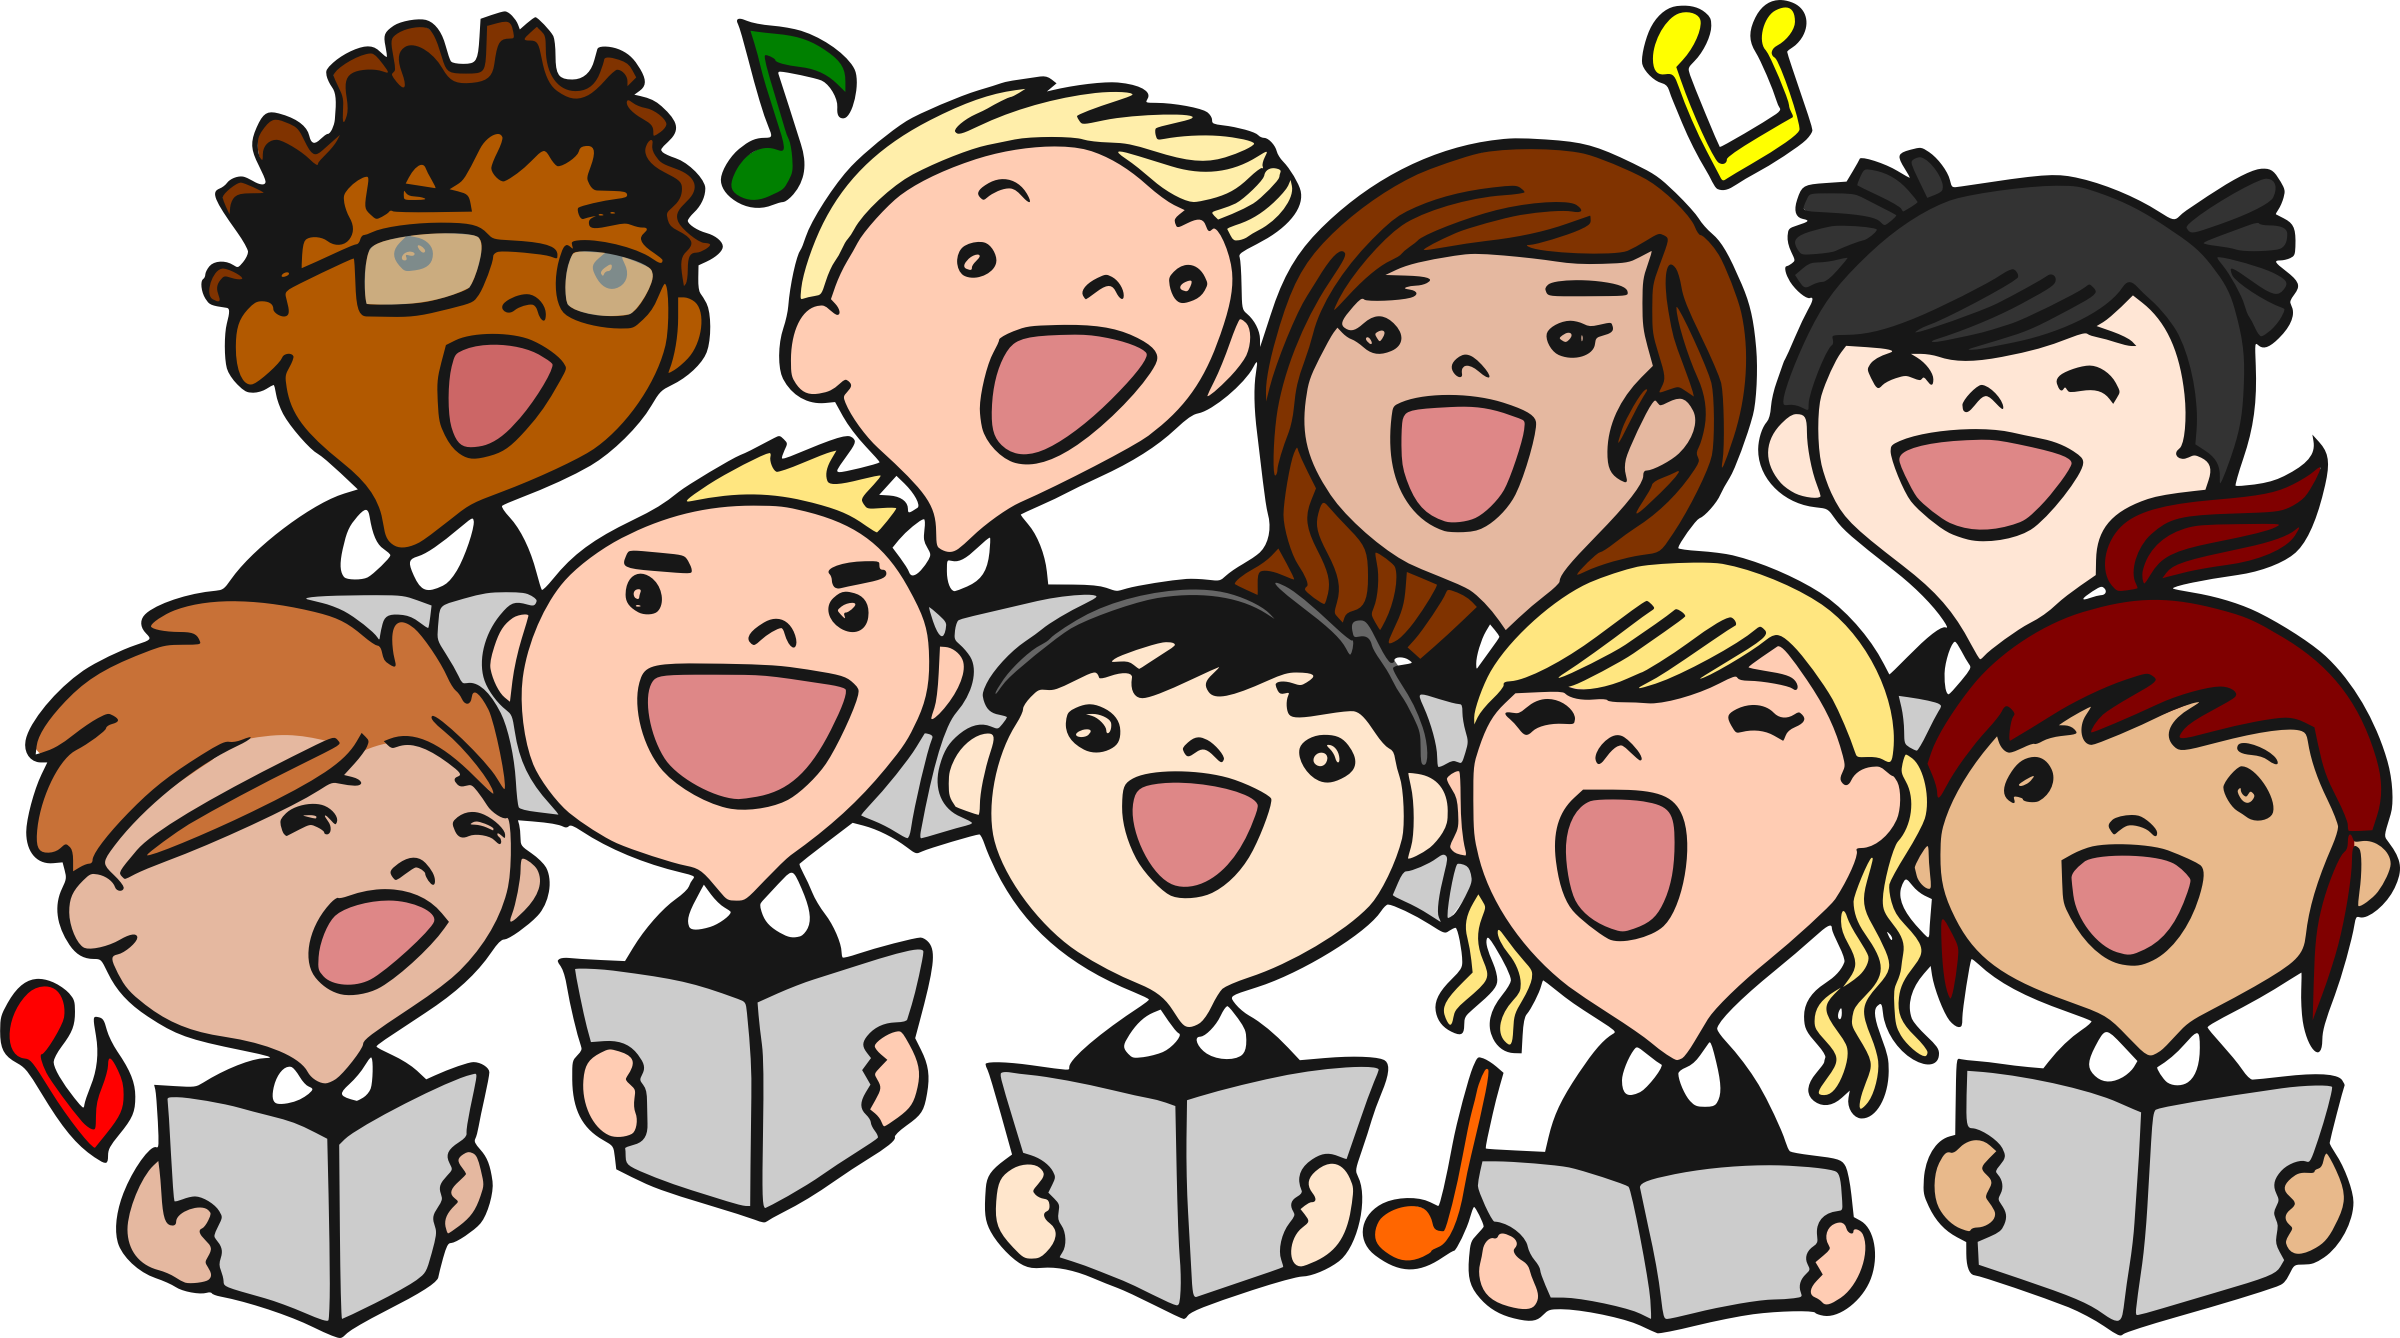 Singer clipart kid choir Choral Children Children Choral Clipart